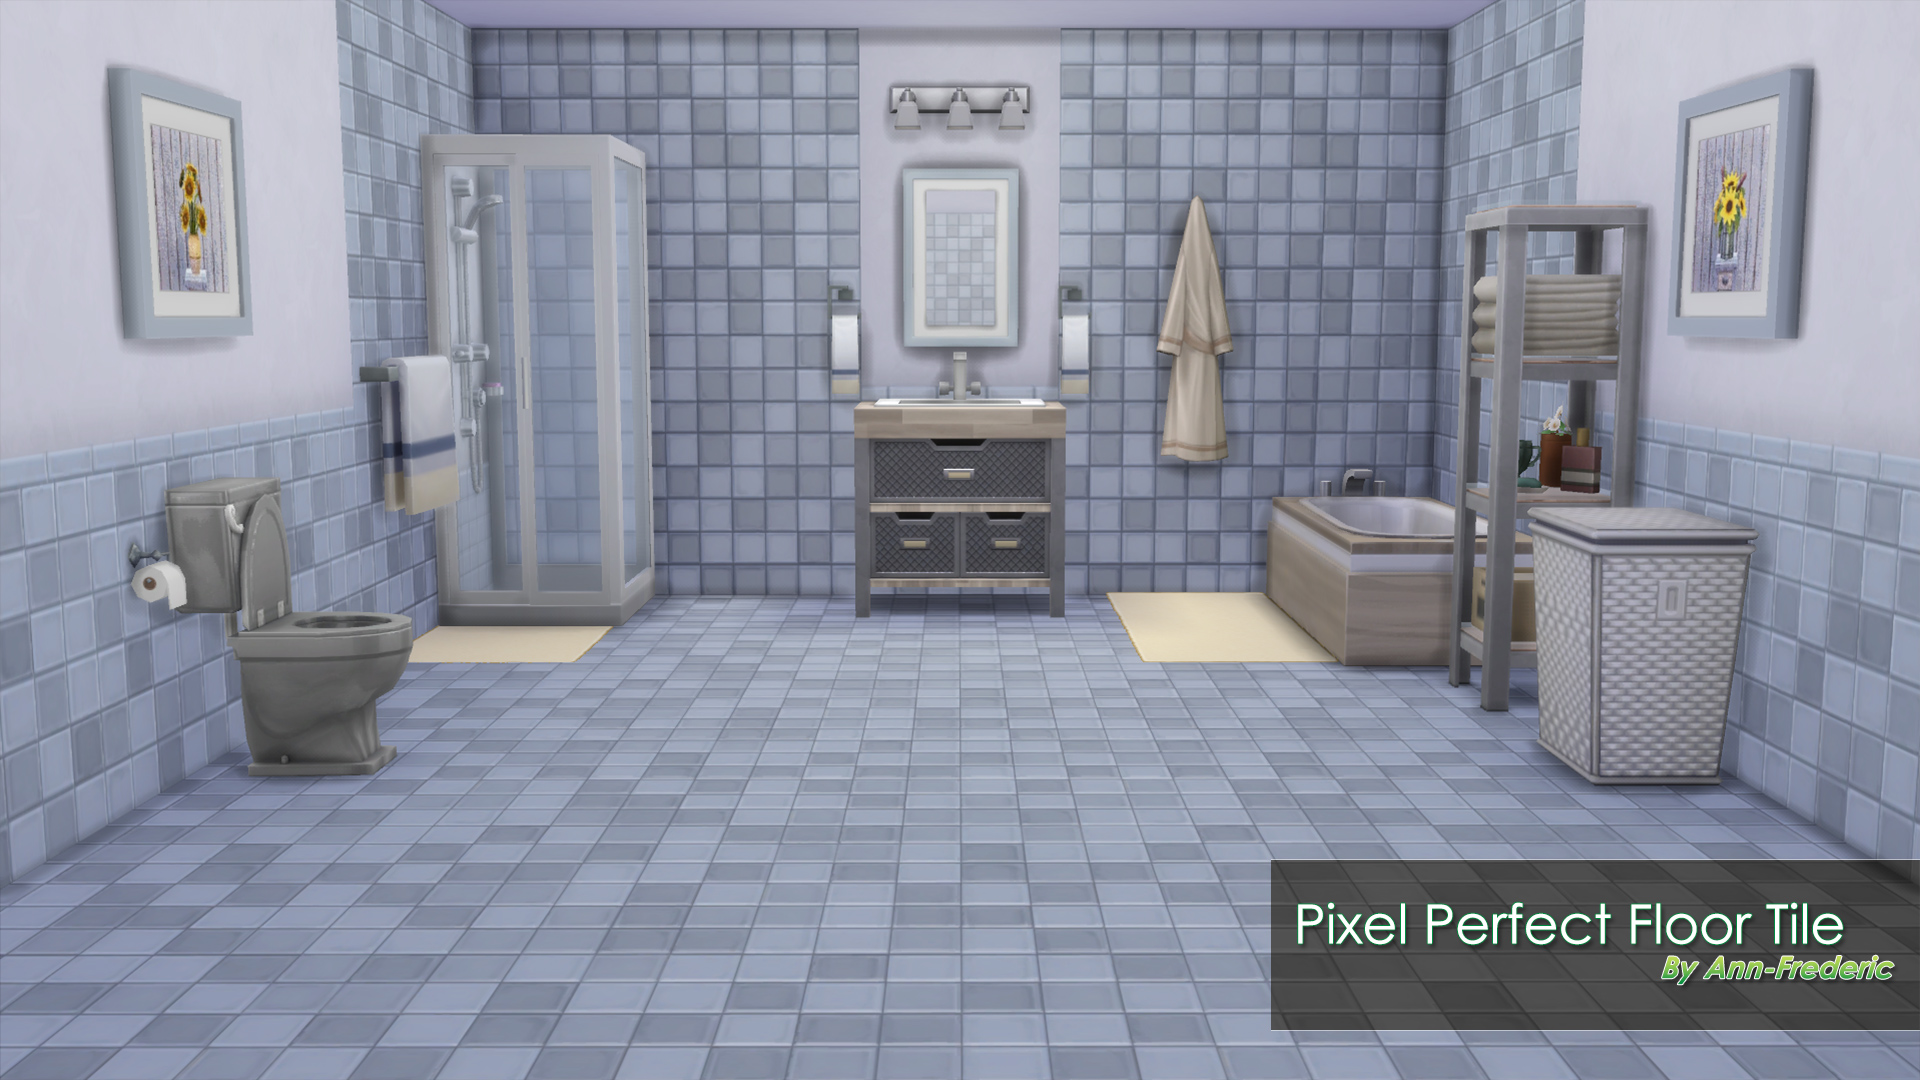 Matching floor and wall tiles image collections tile flooring mod the sims pixel perfect floor tile match maxiss wall advertisement doublecrazyfo image collections dailygadgetfo Choice Image